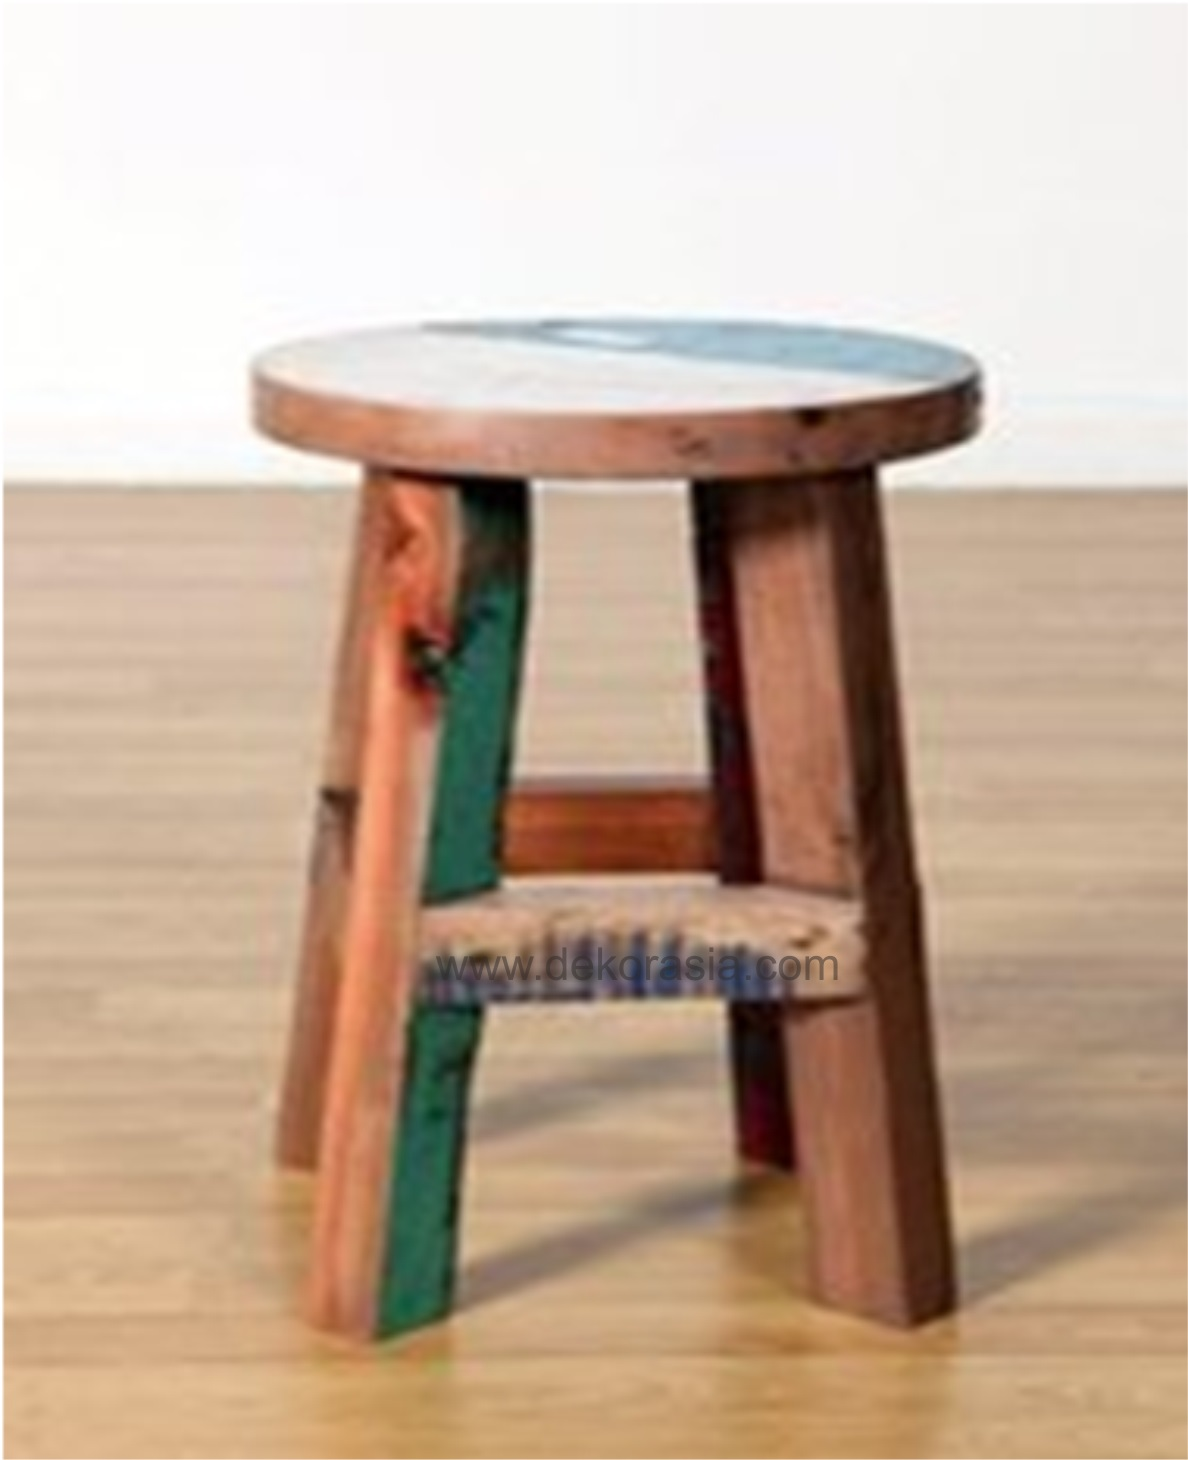 Round stool square line base